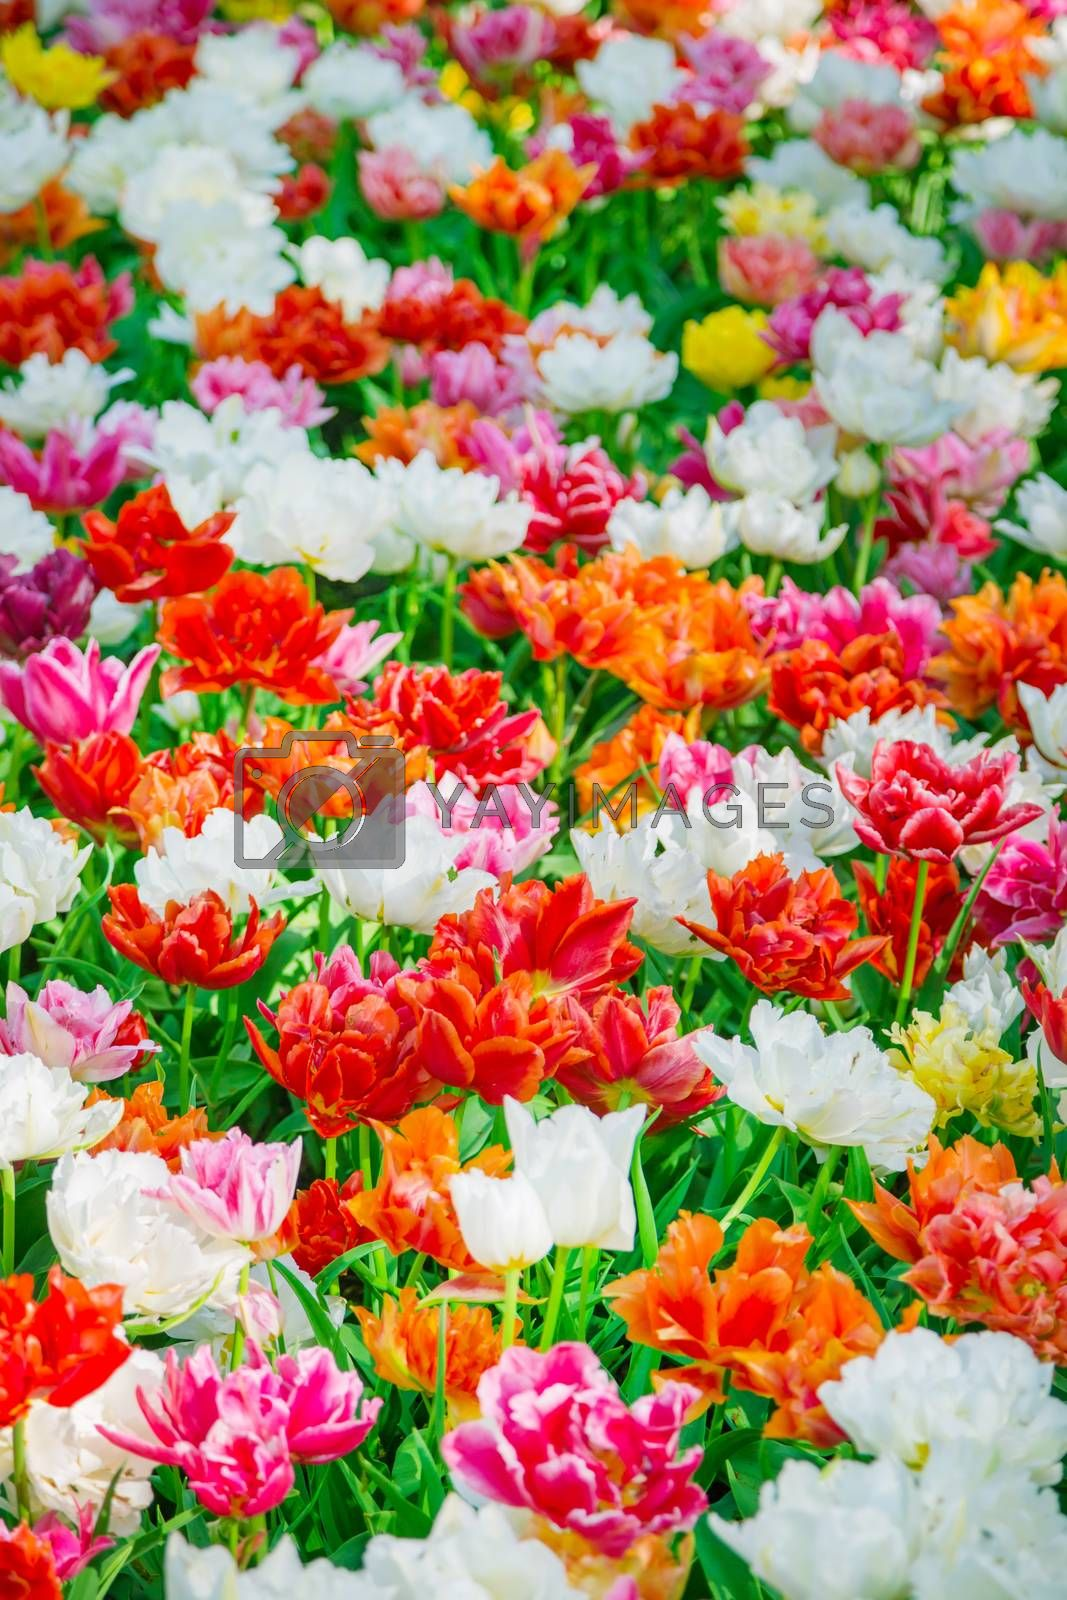 Tulip. Glade of red, pink, orange and white fresh tulips. Colorful tulips in the Keukenhof garden, Netherlands. Tulip Flower Field. Tulip background. Beautiful bouquet of tulips. Spring landscape.